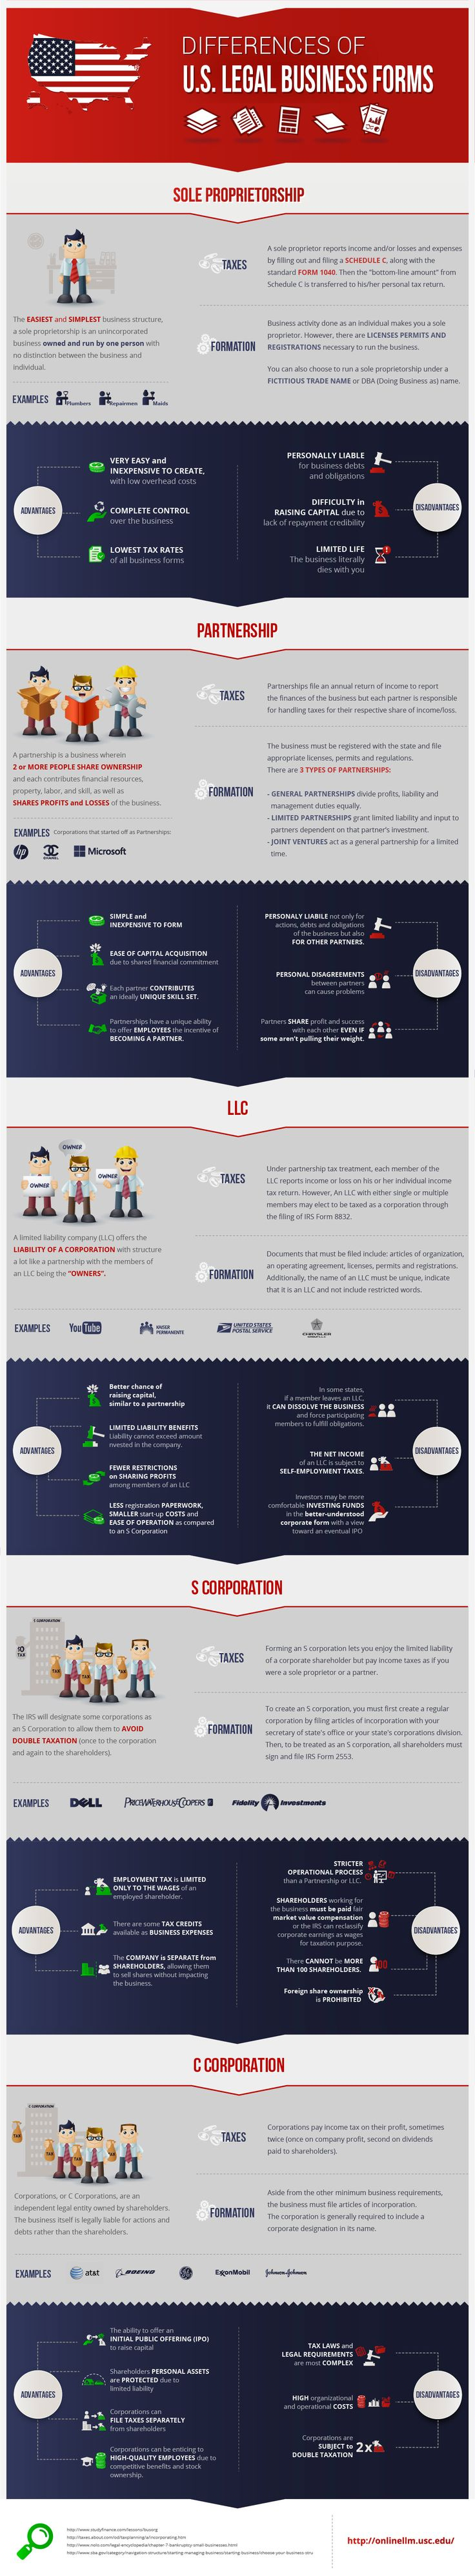 How Should You Incorporate Your Business? Here's a Cheat Sheet. (Infographic)